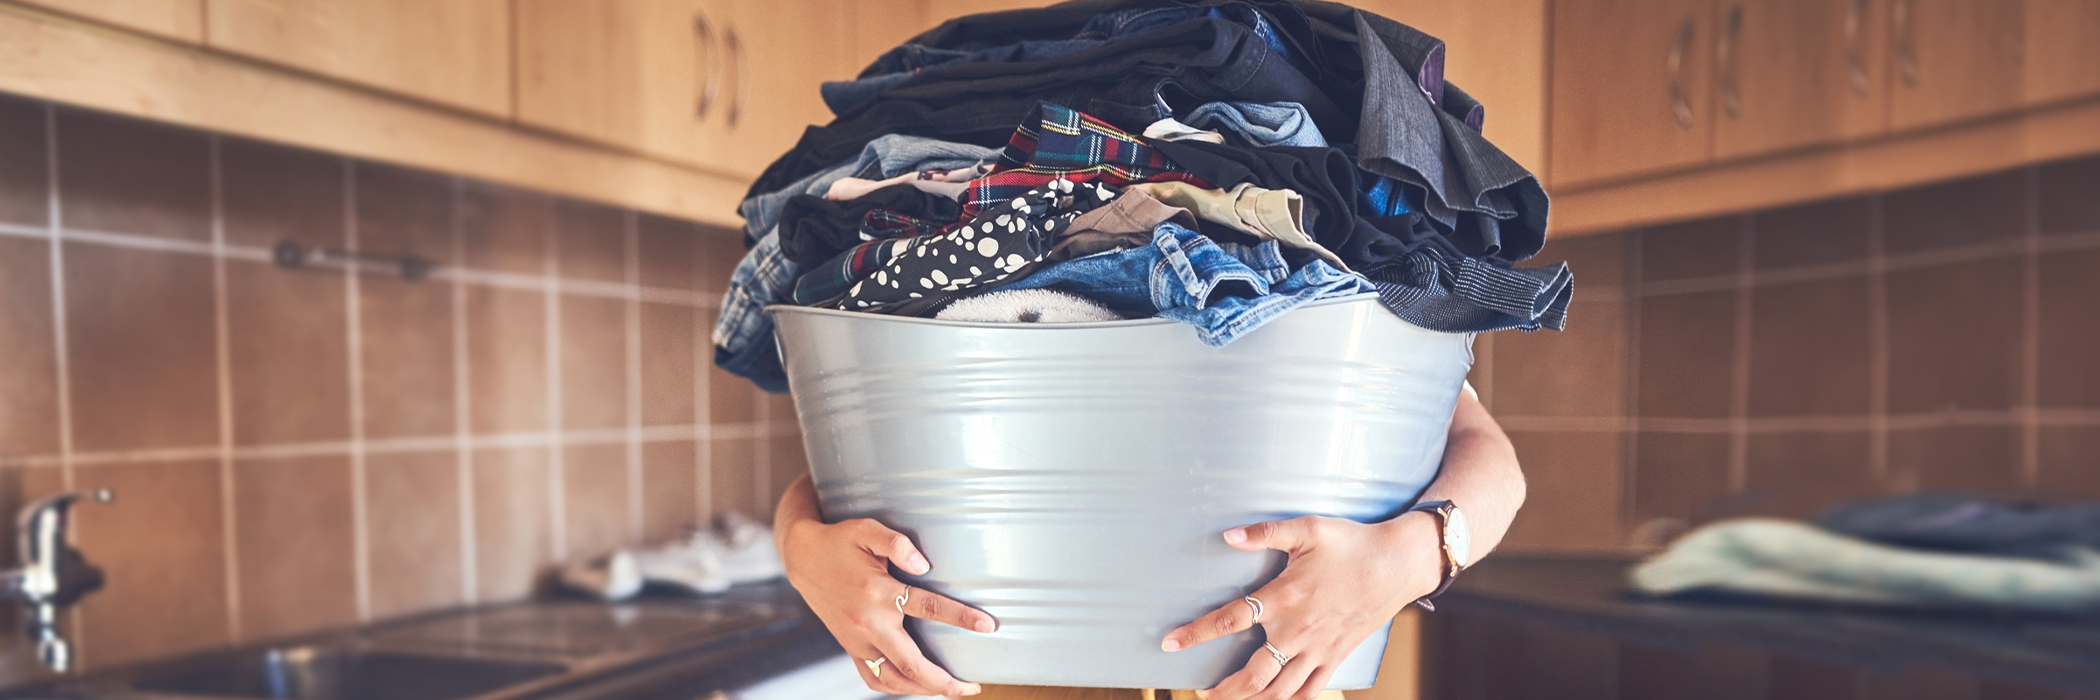 Shot of an unrecognizable woman holding overloaded laundry basket.